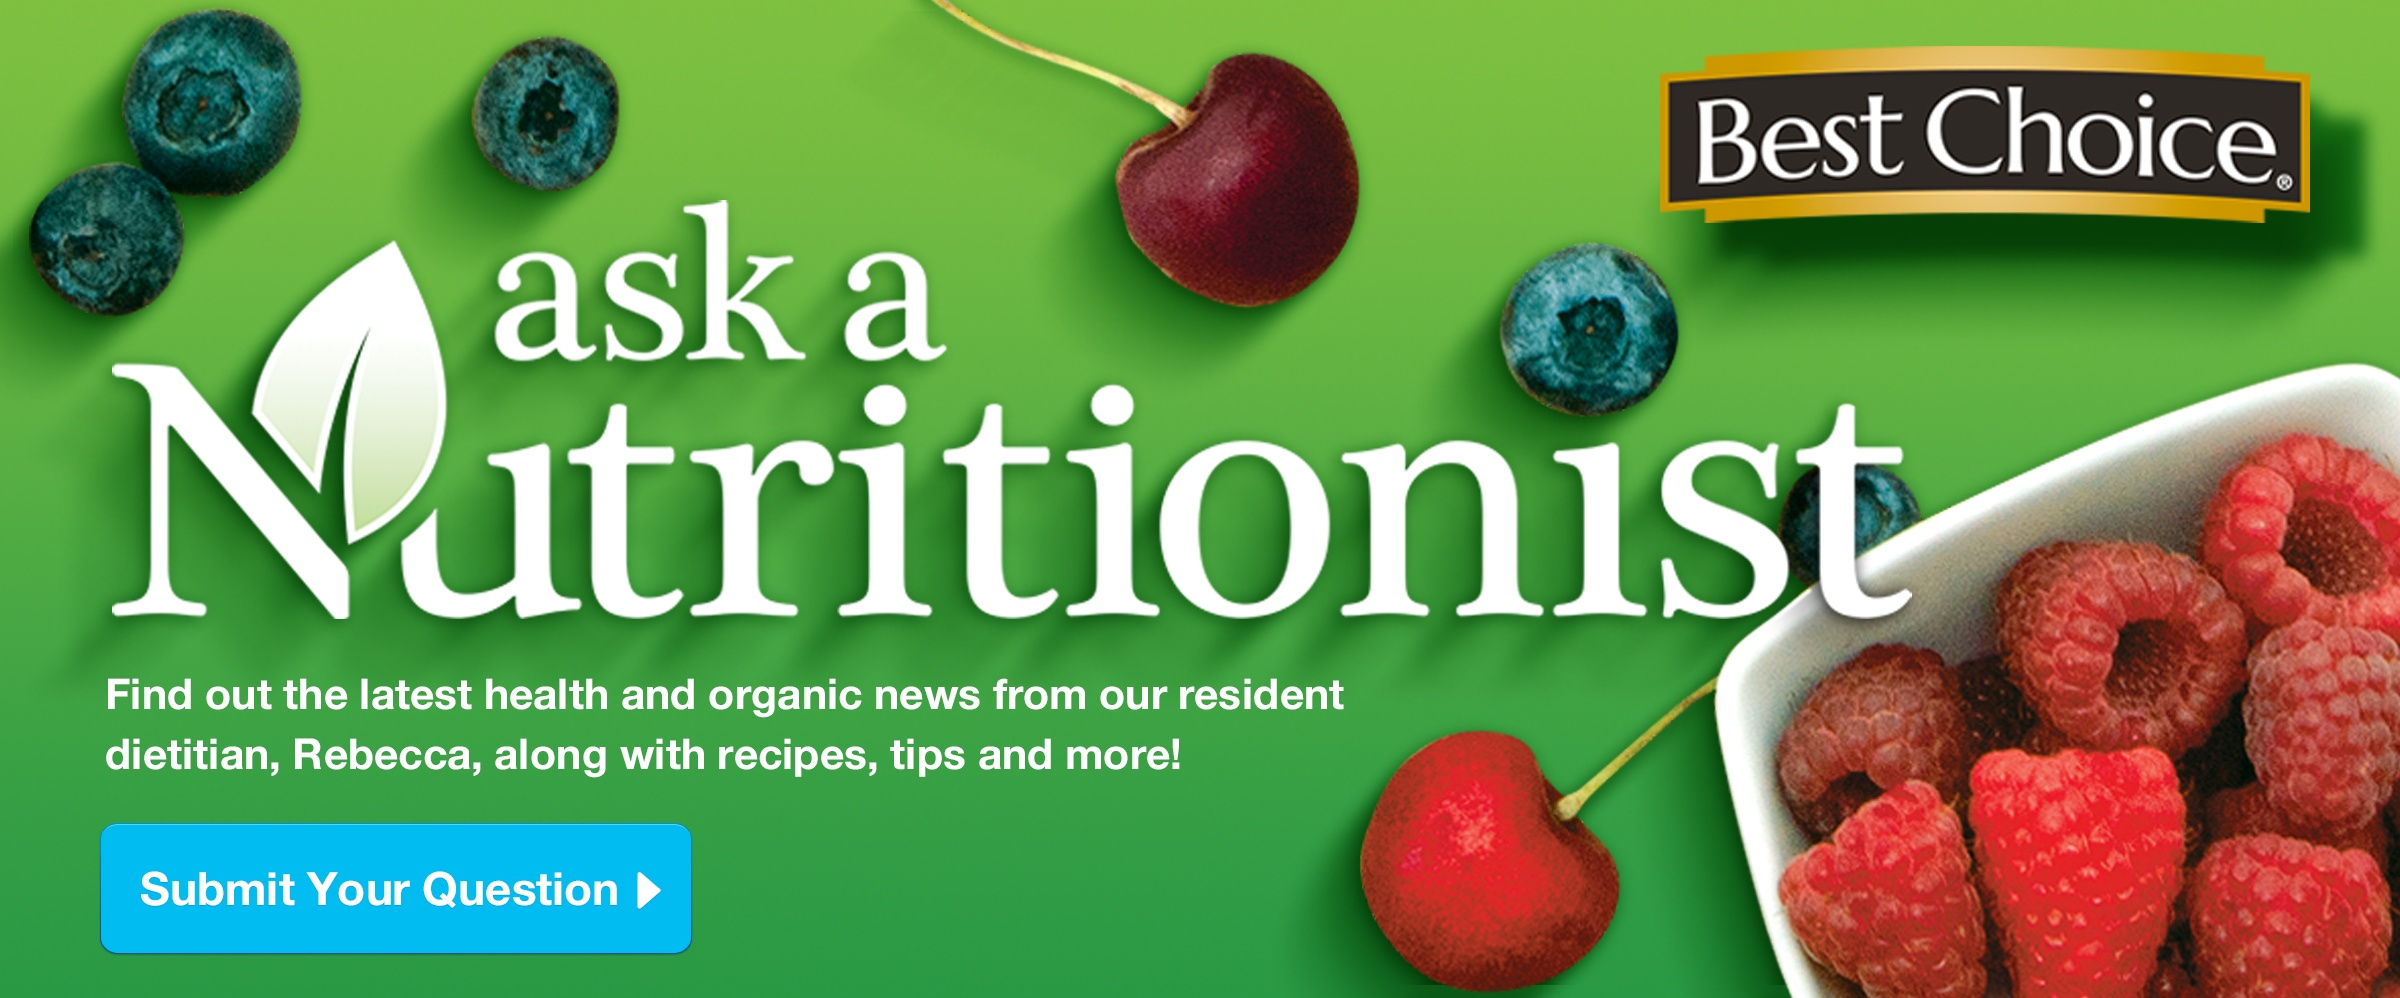 Best Choice - Ask a Nutritionist. Find out the latest health and organic news from our resident dietitian, Rebecca, along with recipes, tips and more! Submit your question >